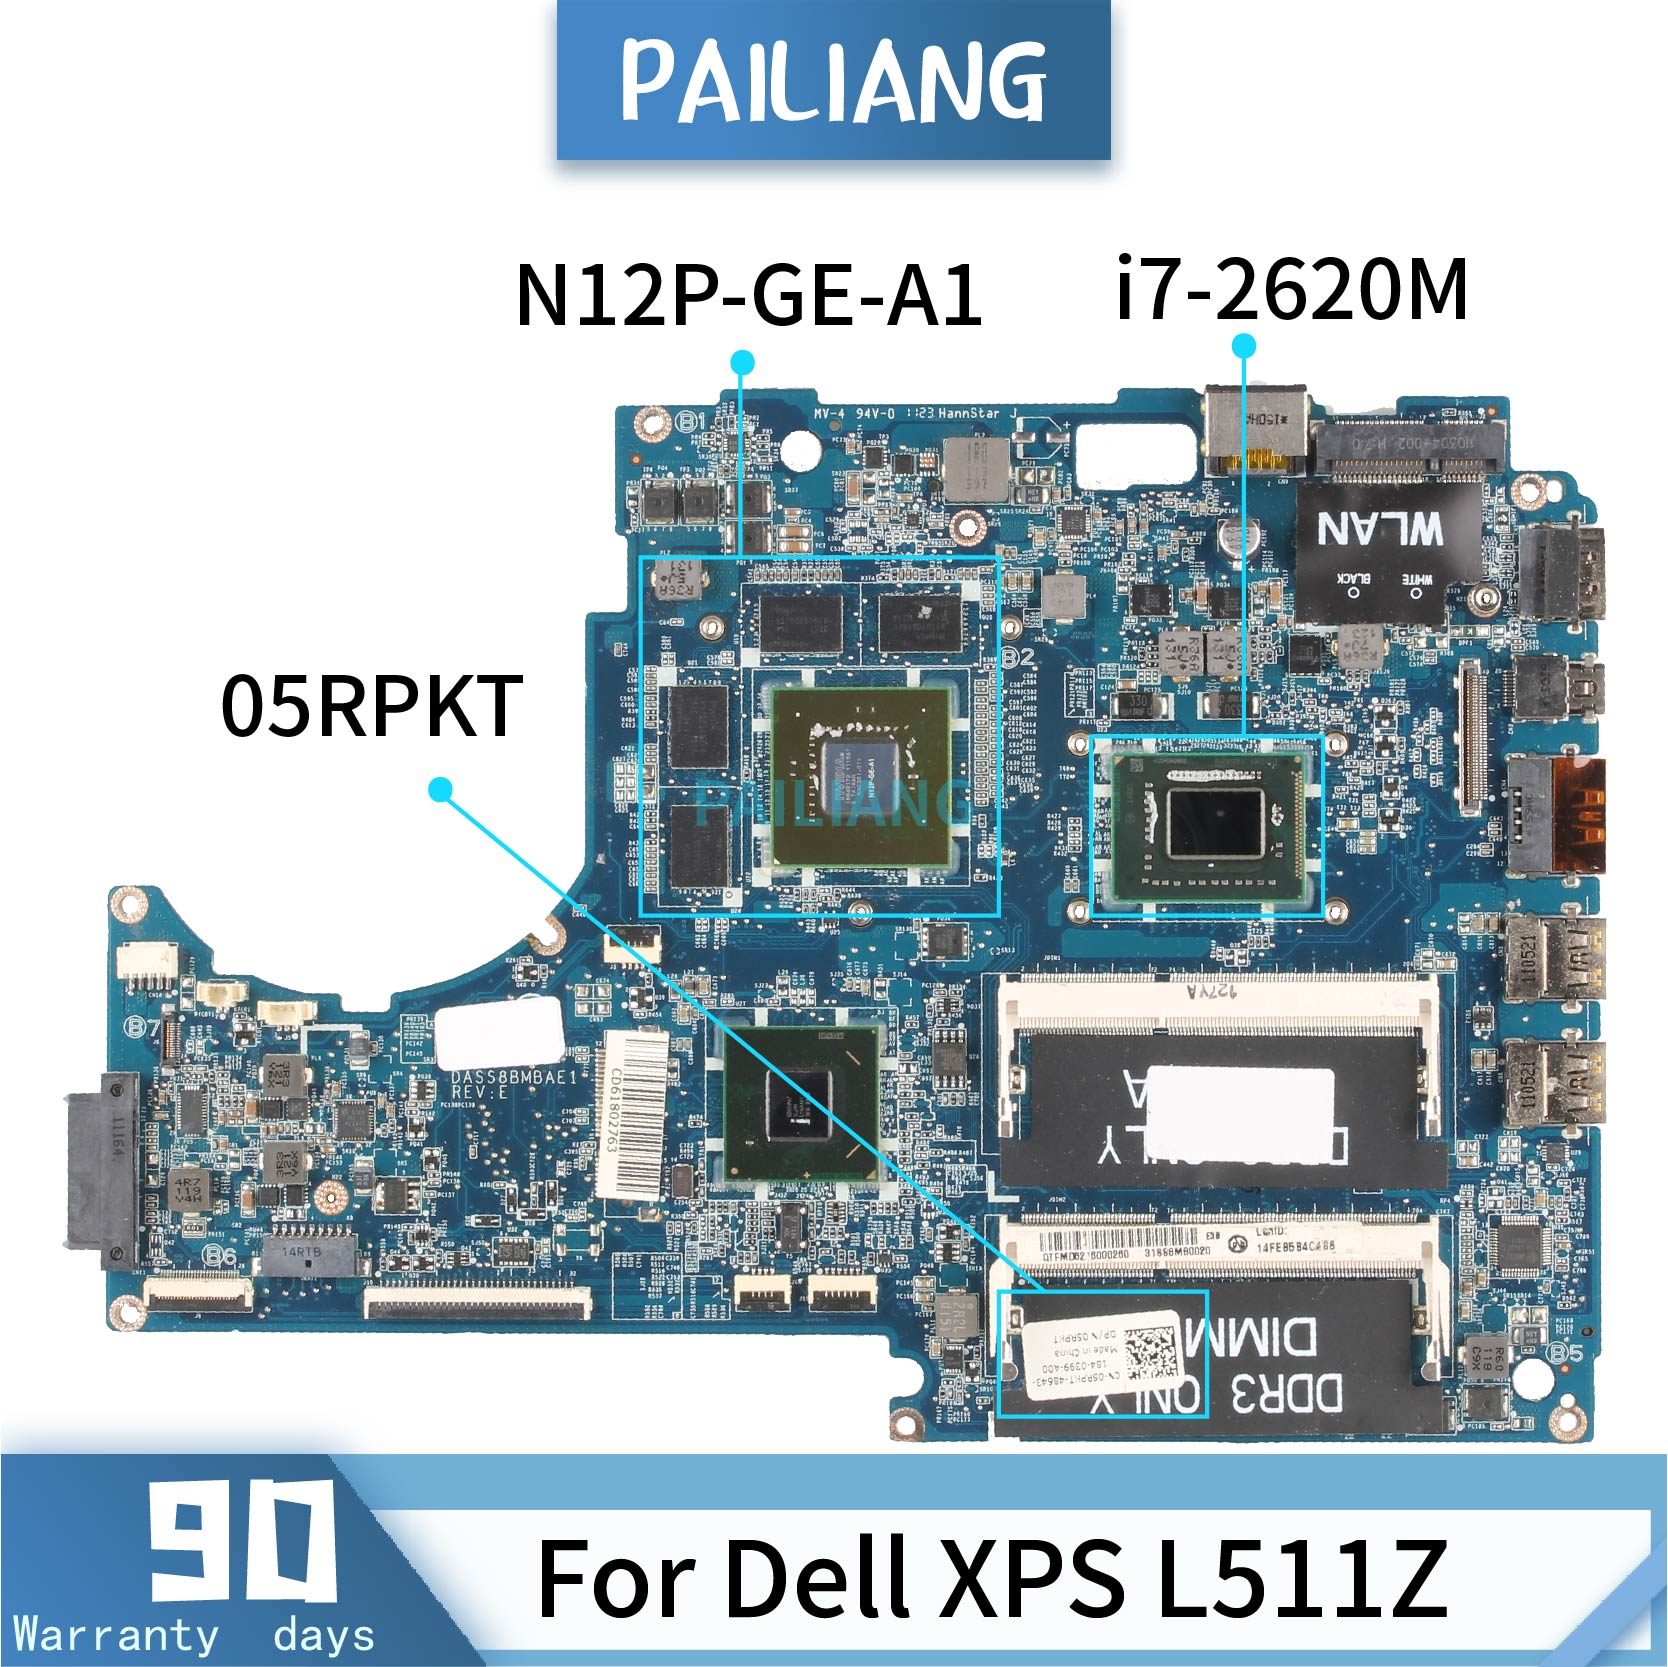 PAILIANG Laptop motherboard For Dell XPS L511Z Core <font><b>i7</b></font>-<font><b>2620M</b></font> Mainboard 05RPKT DASS8BMBAE1 TESTED N12P-GE-A1 DDR3 image